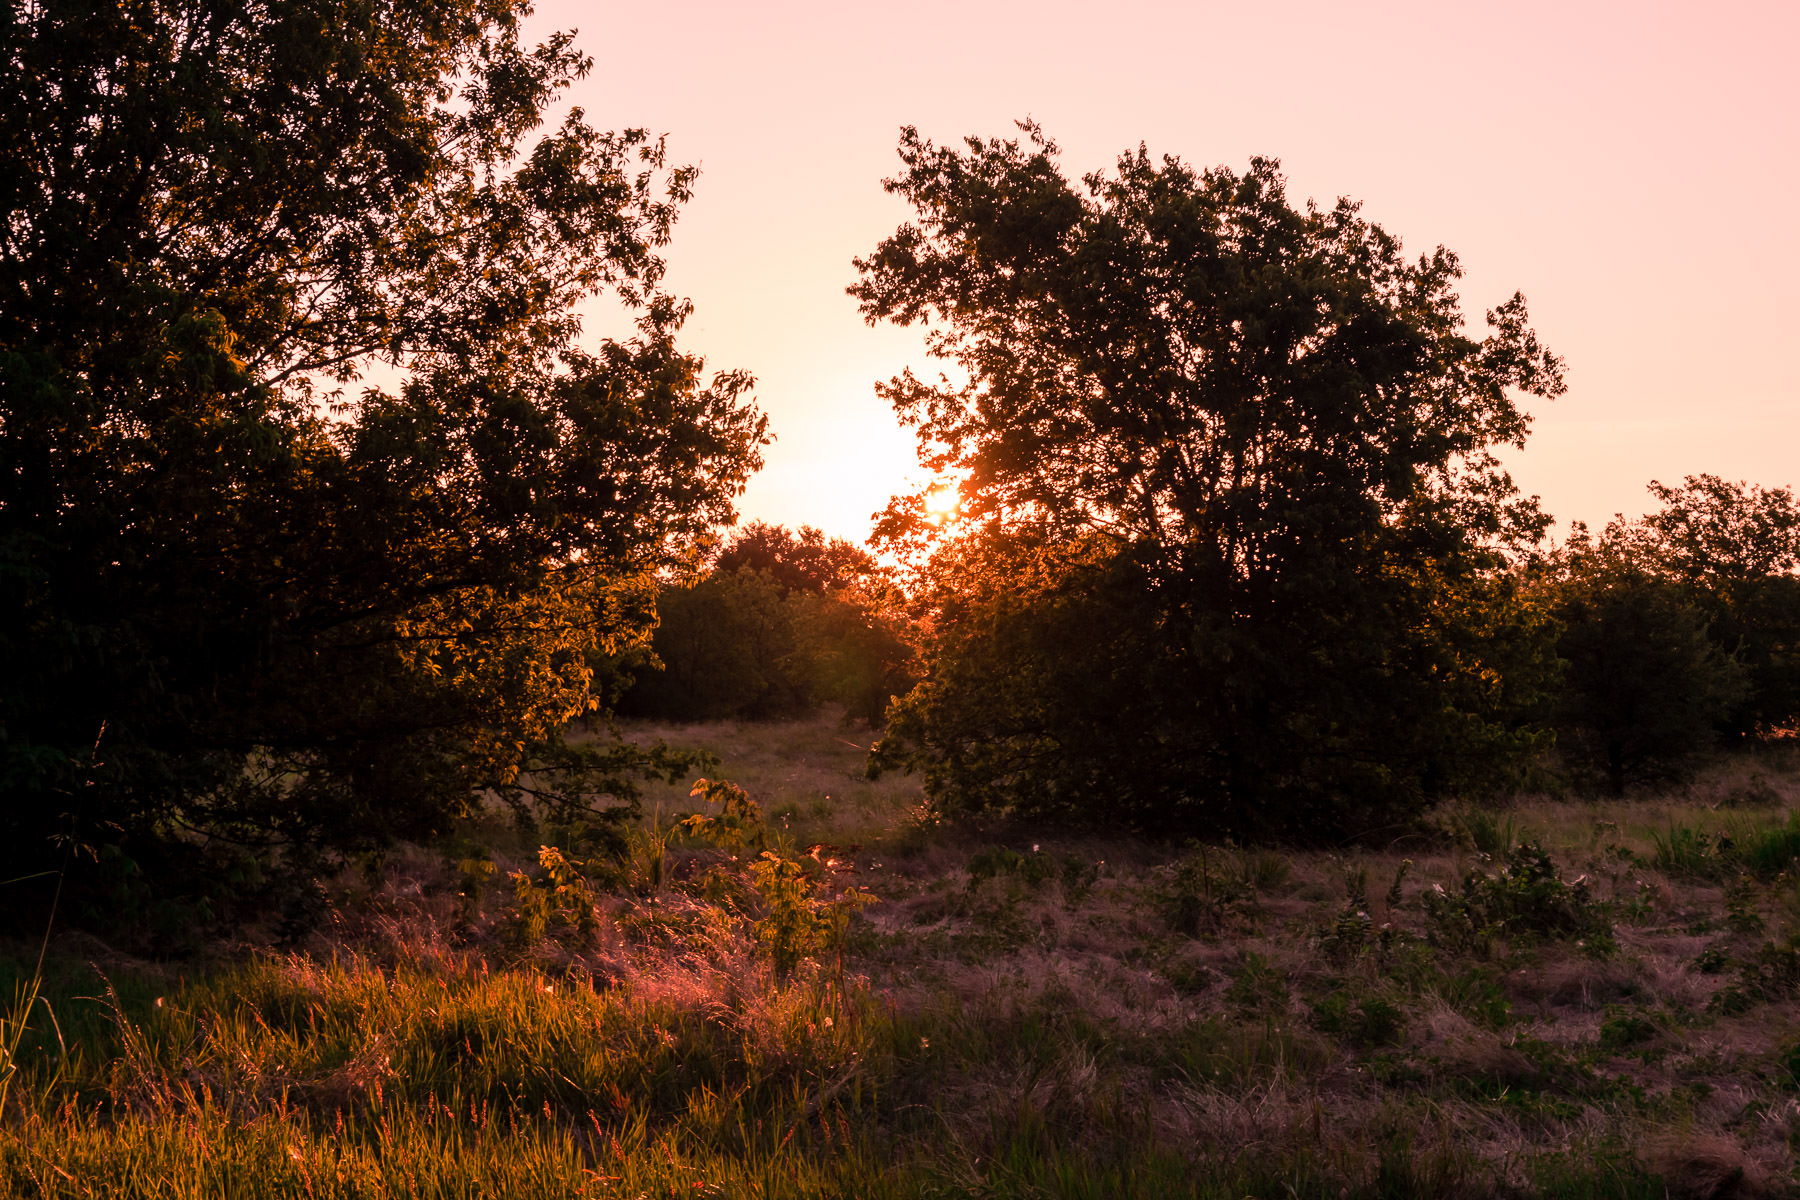 The sun rises over North Texas at the Arbor Hills Nature Preserve, Plano.